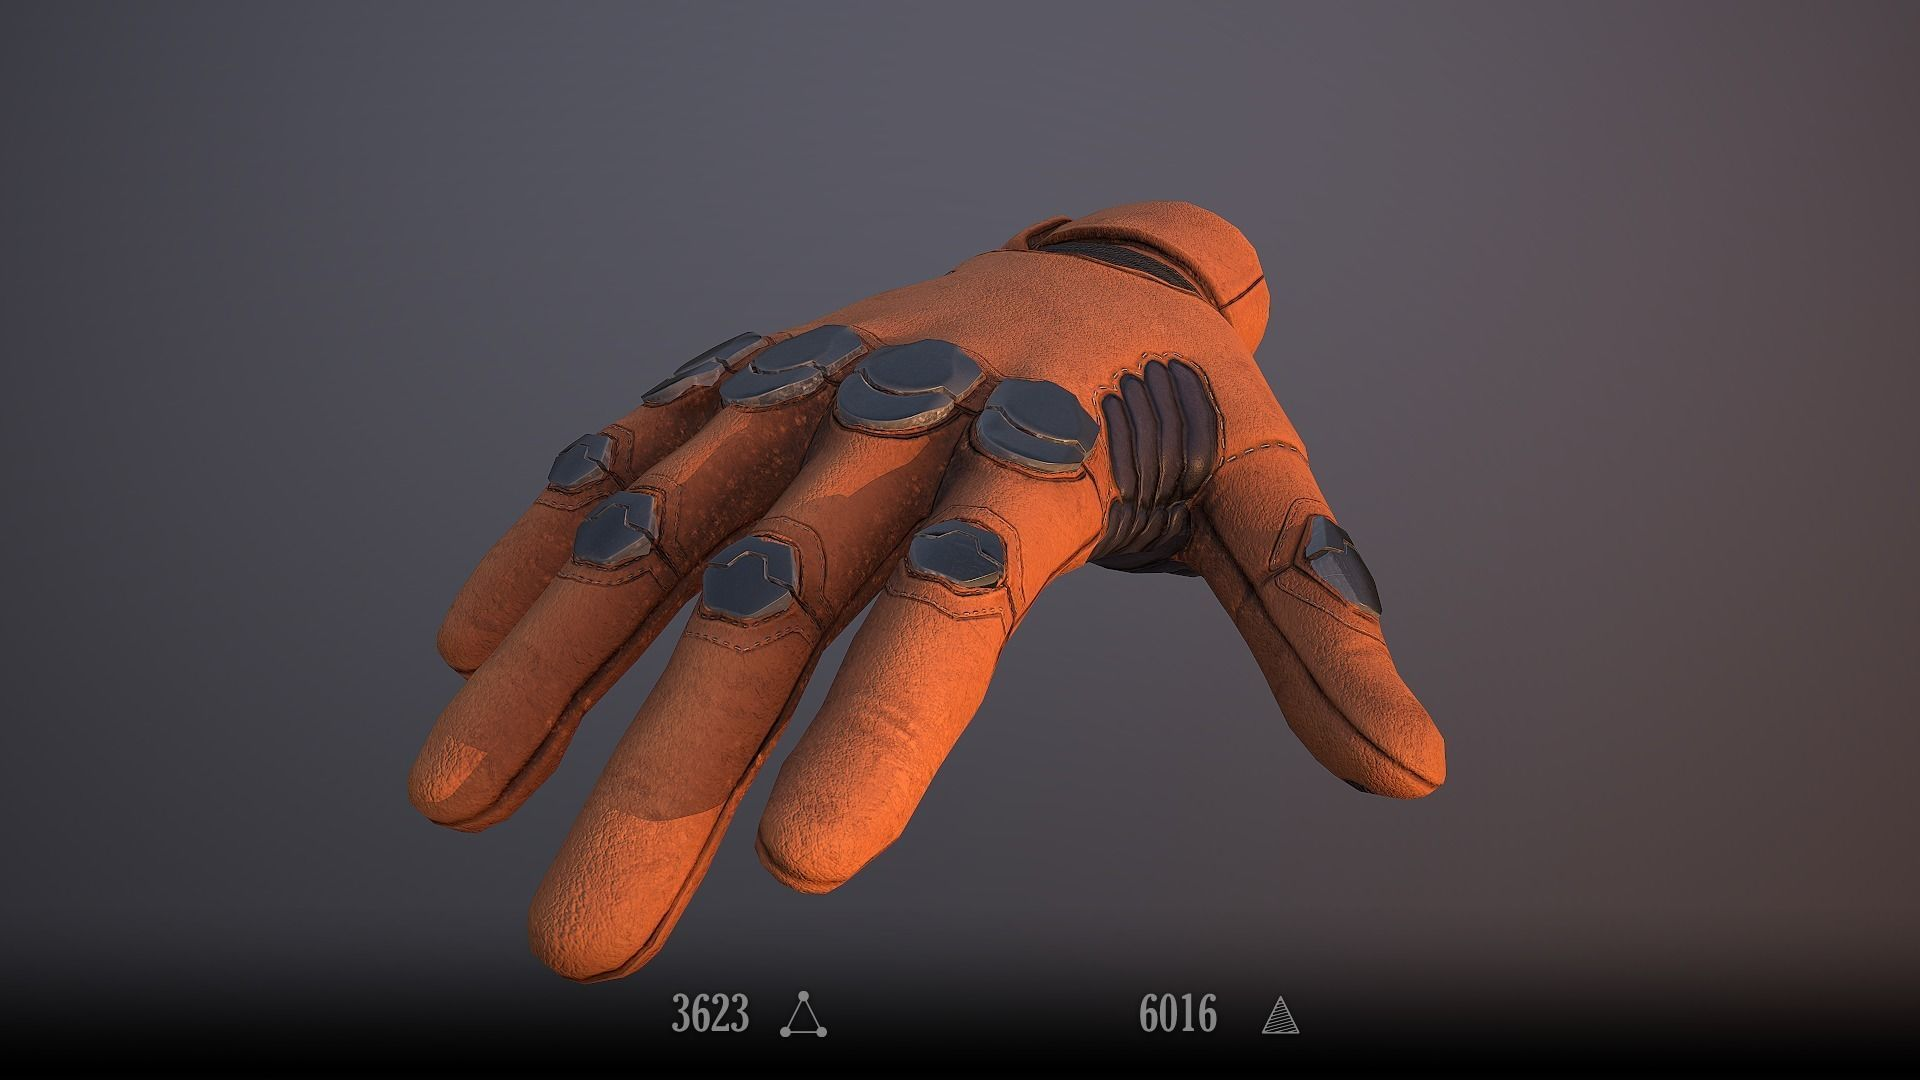 Sci-Fi Glove - Rigged and Animated